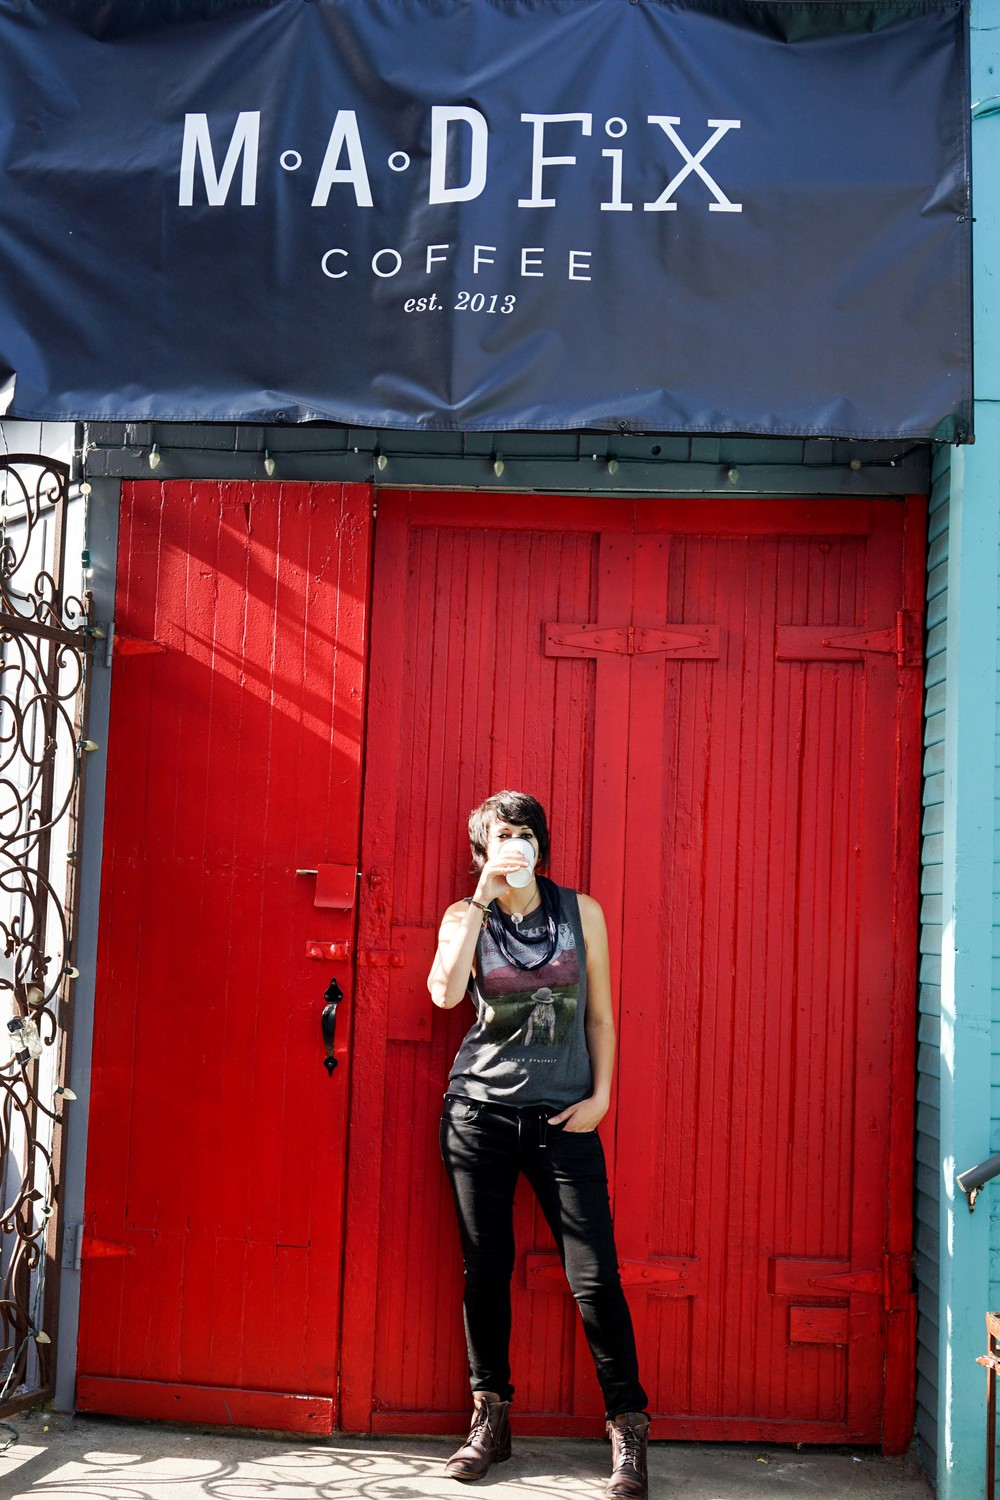 Dottie enjoys a cup of coffee in front of the welcoming red portals at M.A.D. FiX. Photo by Jose Lopez.